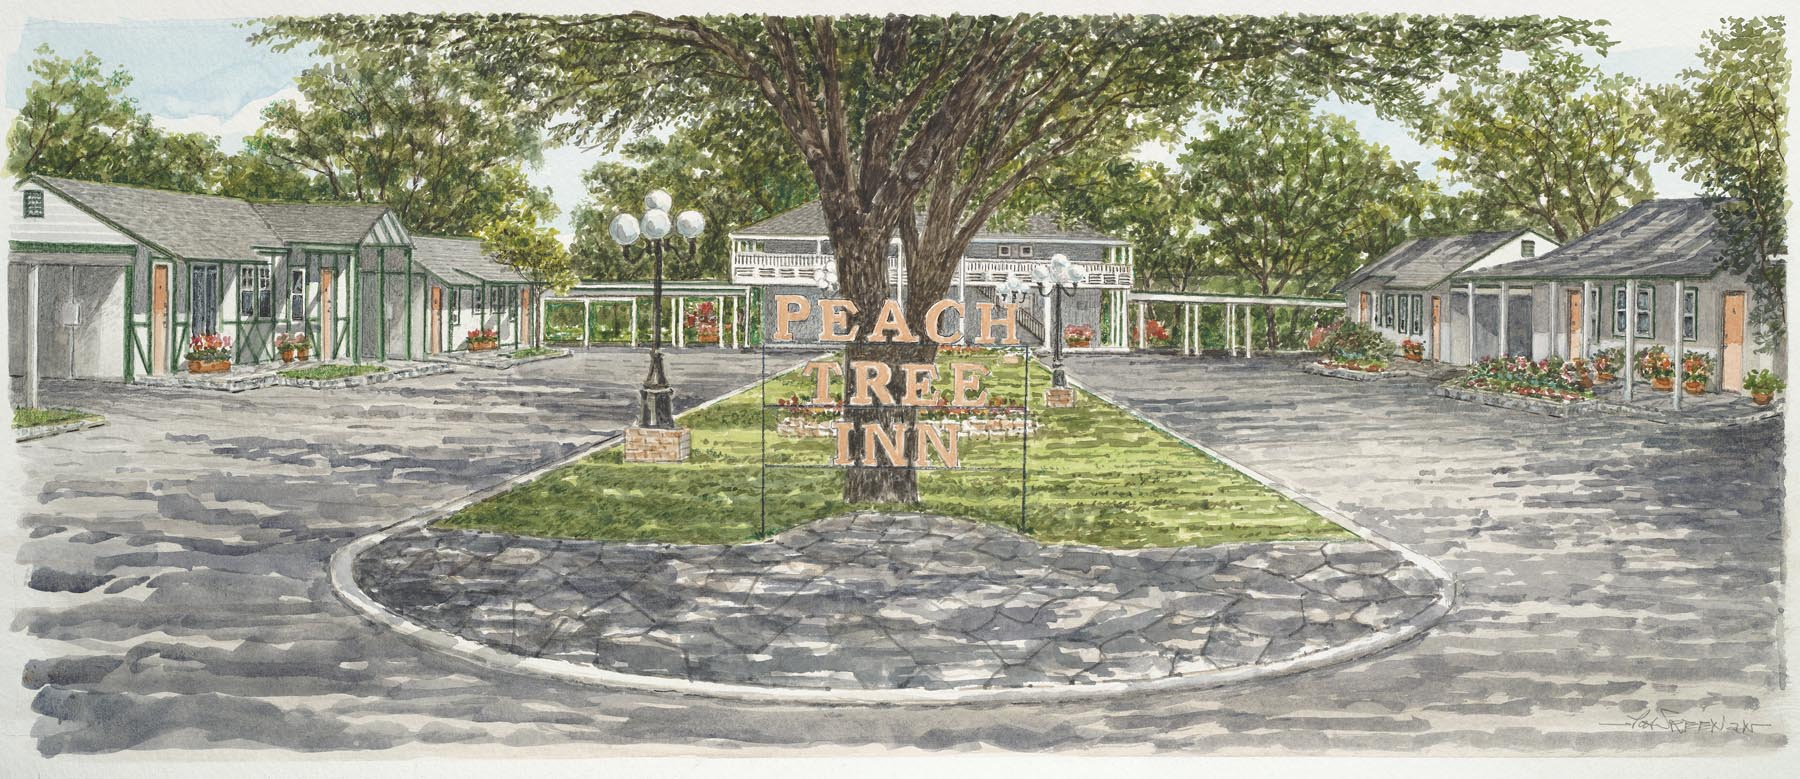 Drawing of Peach Tree Inn courtyard.